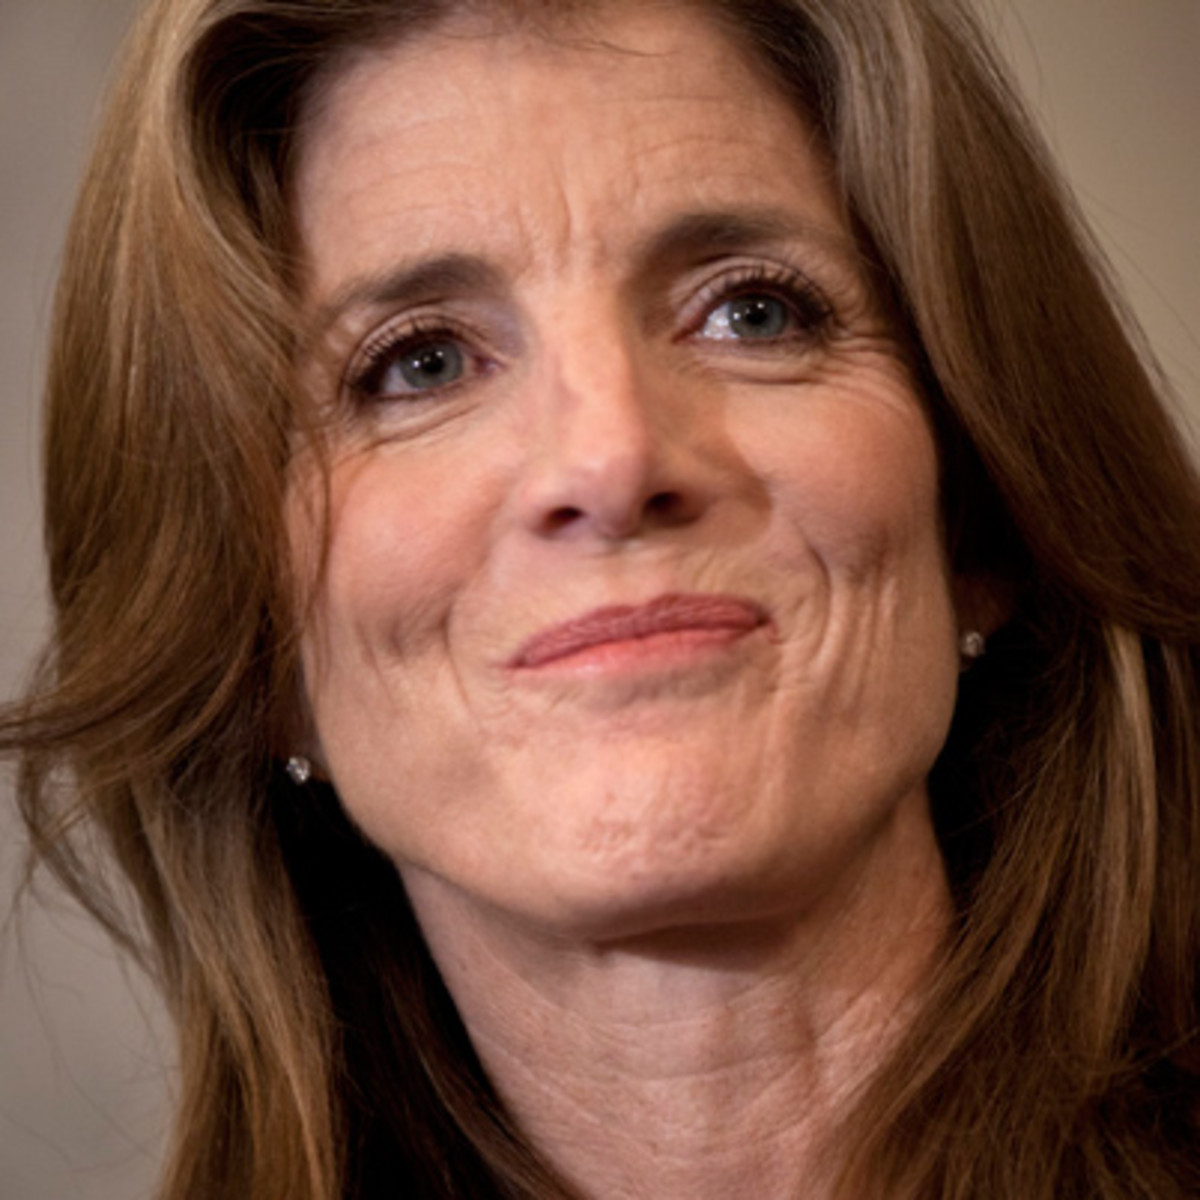 Caroline kennedy writer diplomat lawyer biography altavistaventures Images